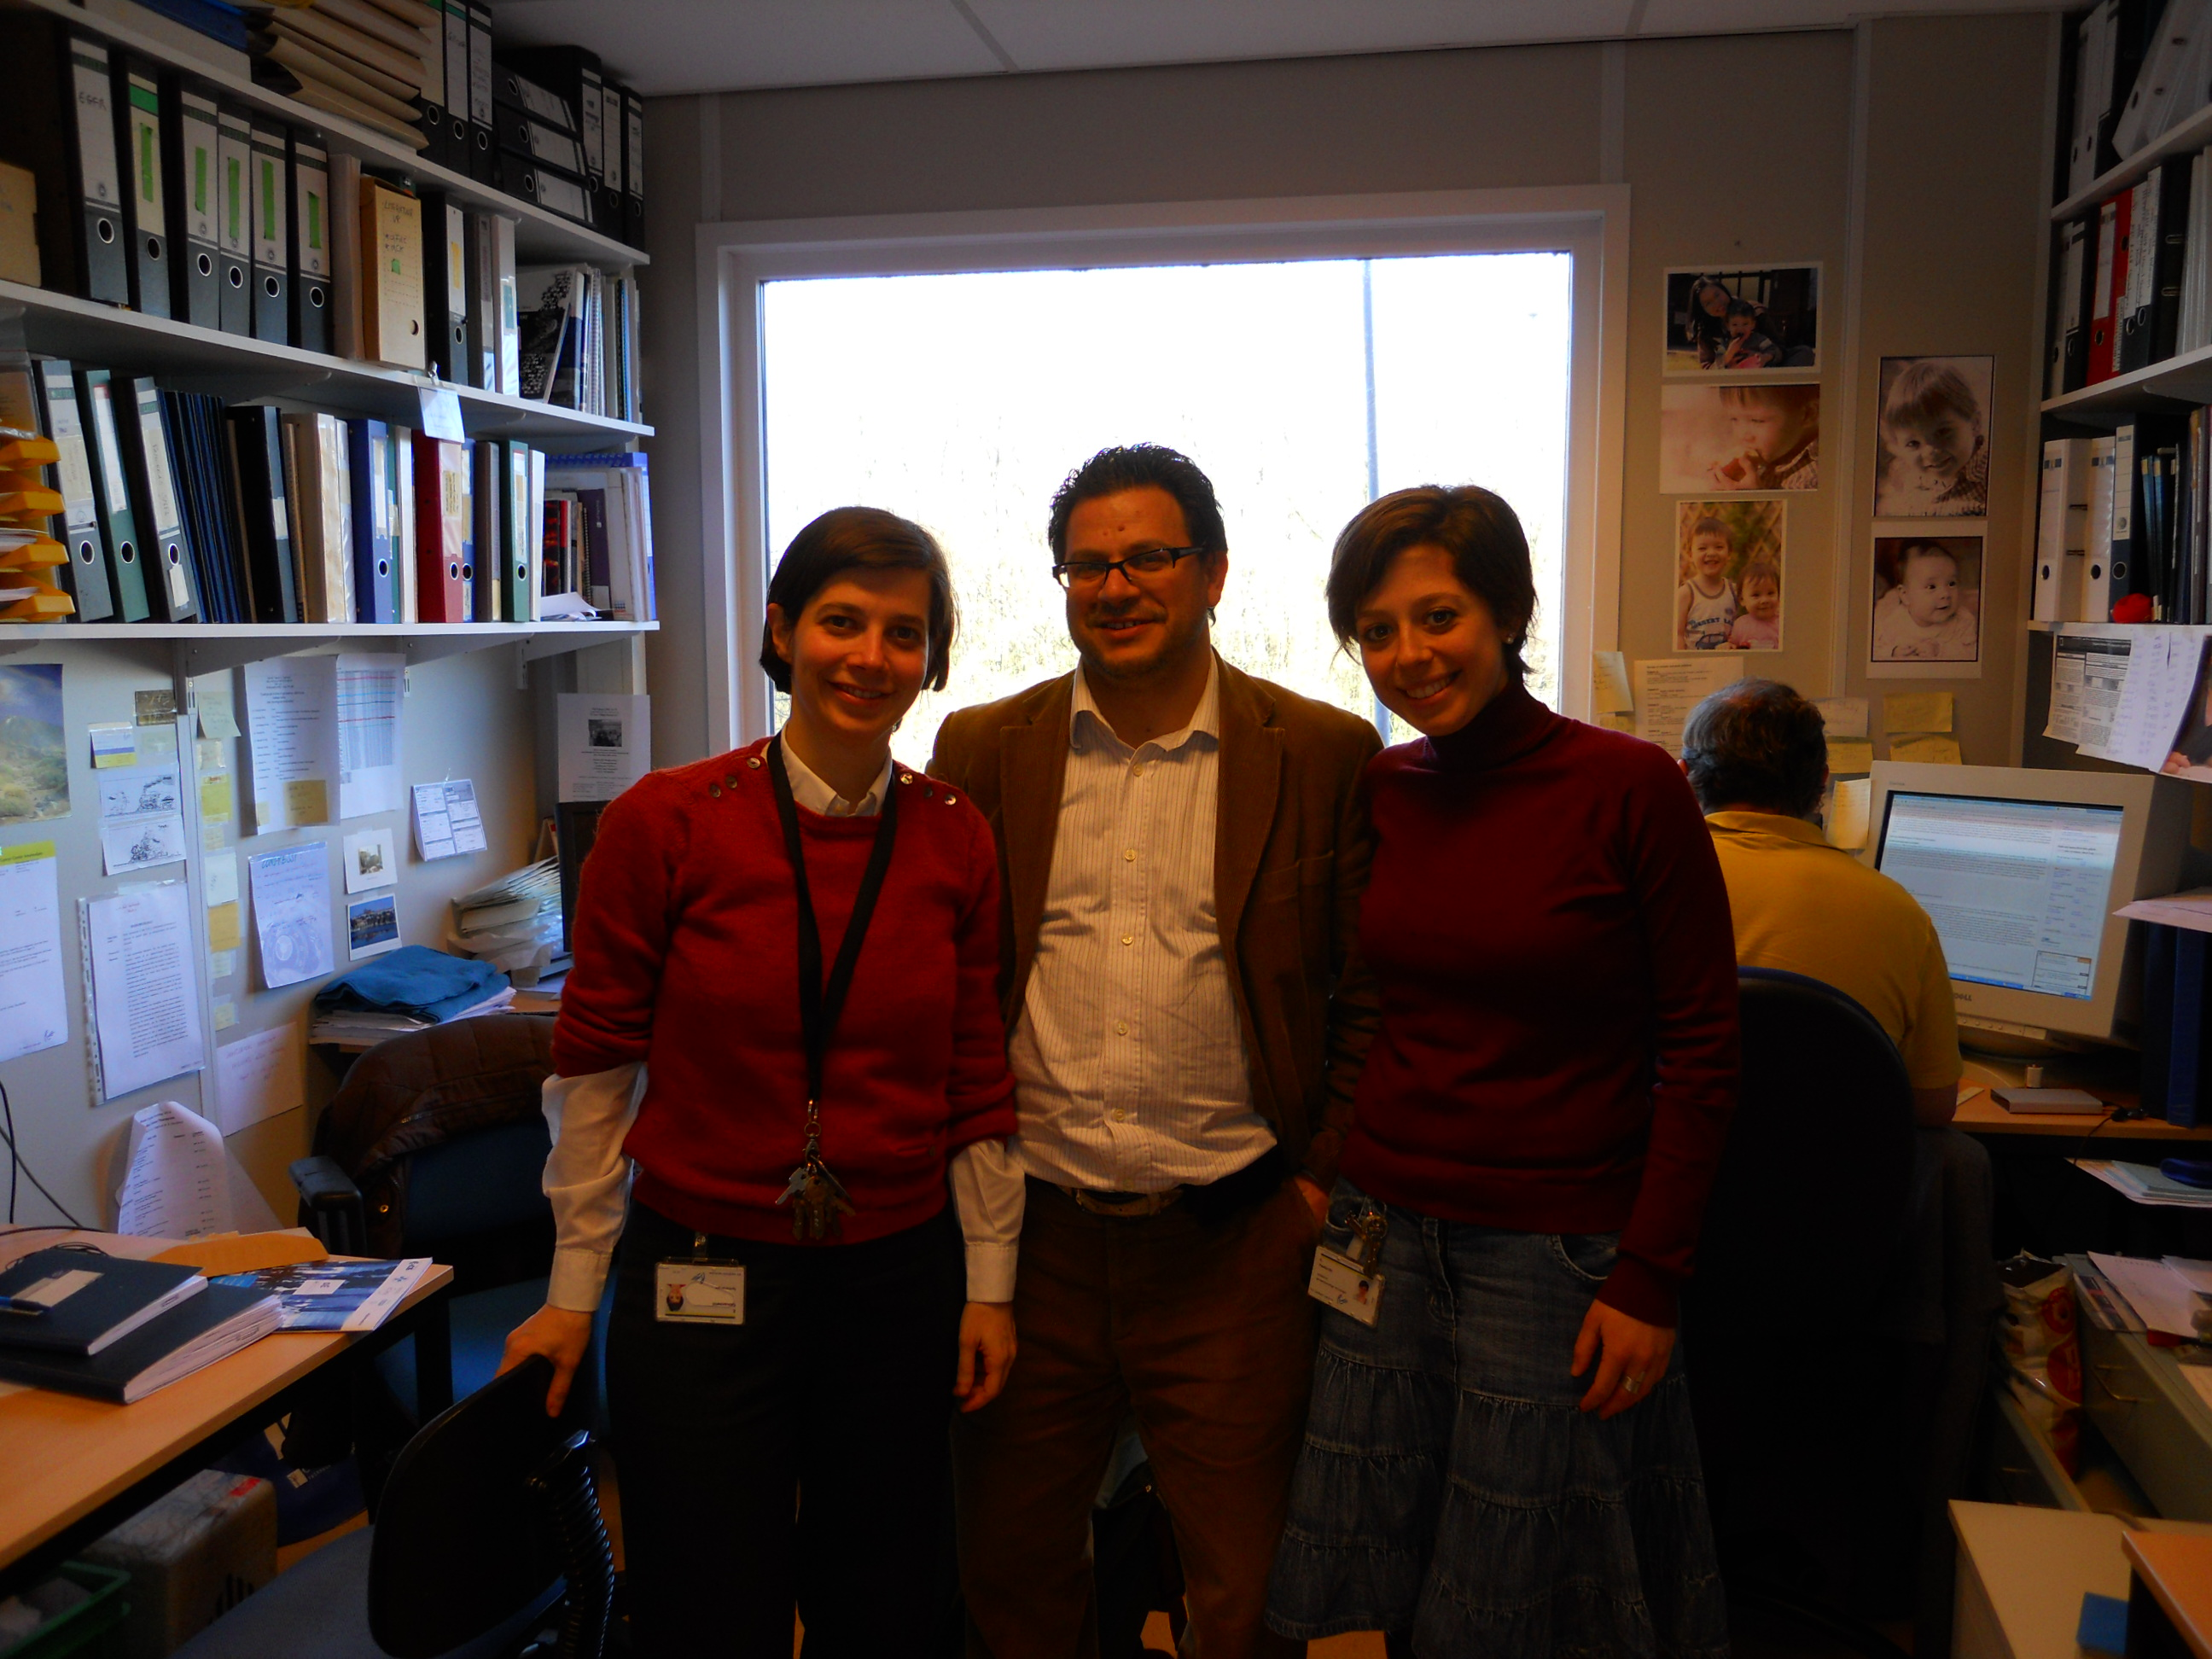 Dr. Funel and Dr. Giovannetti with the PhD student Elisa Paolicchi 2011